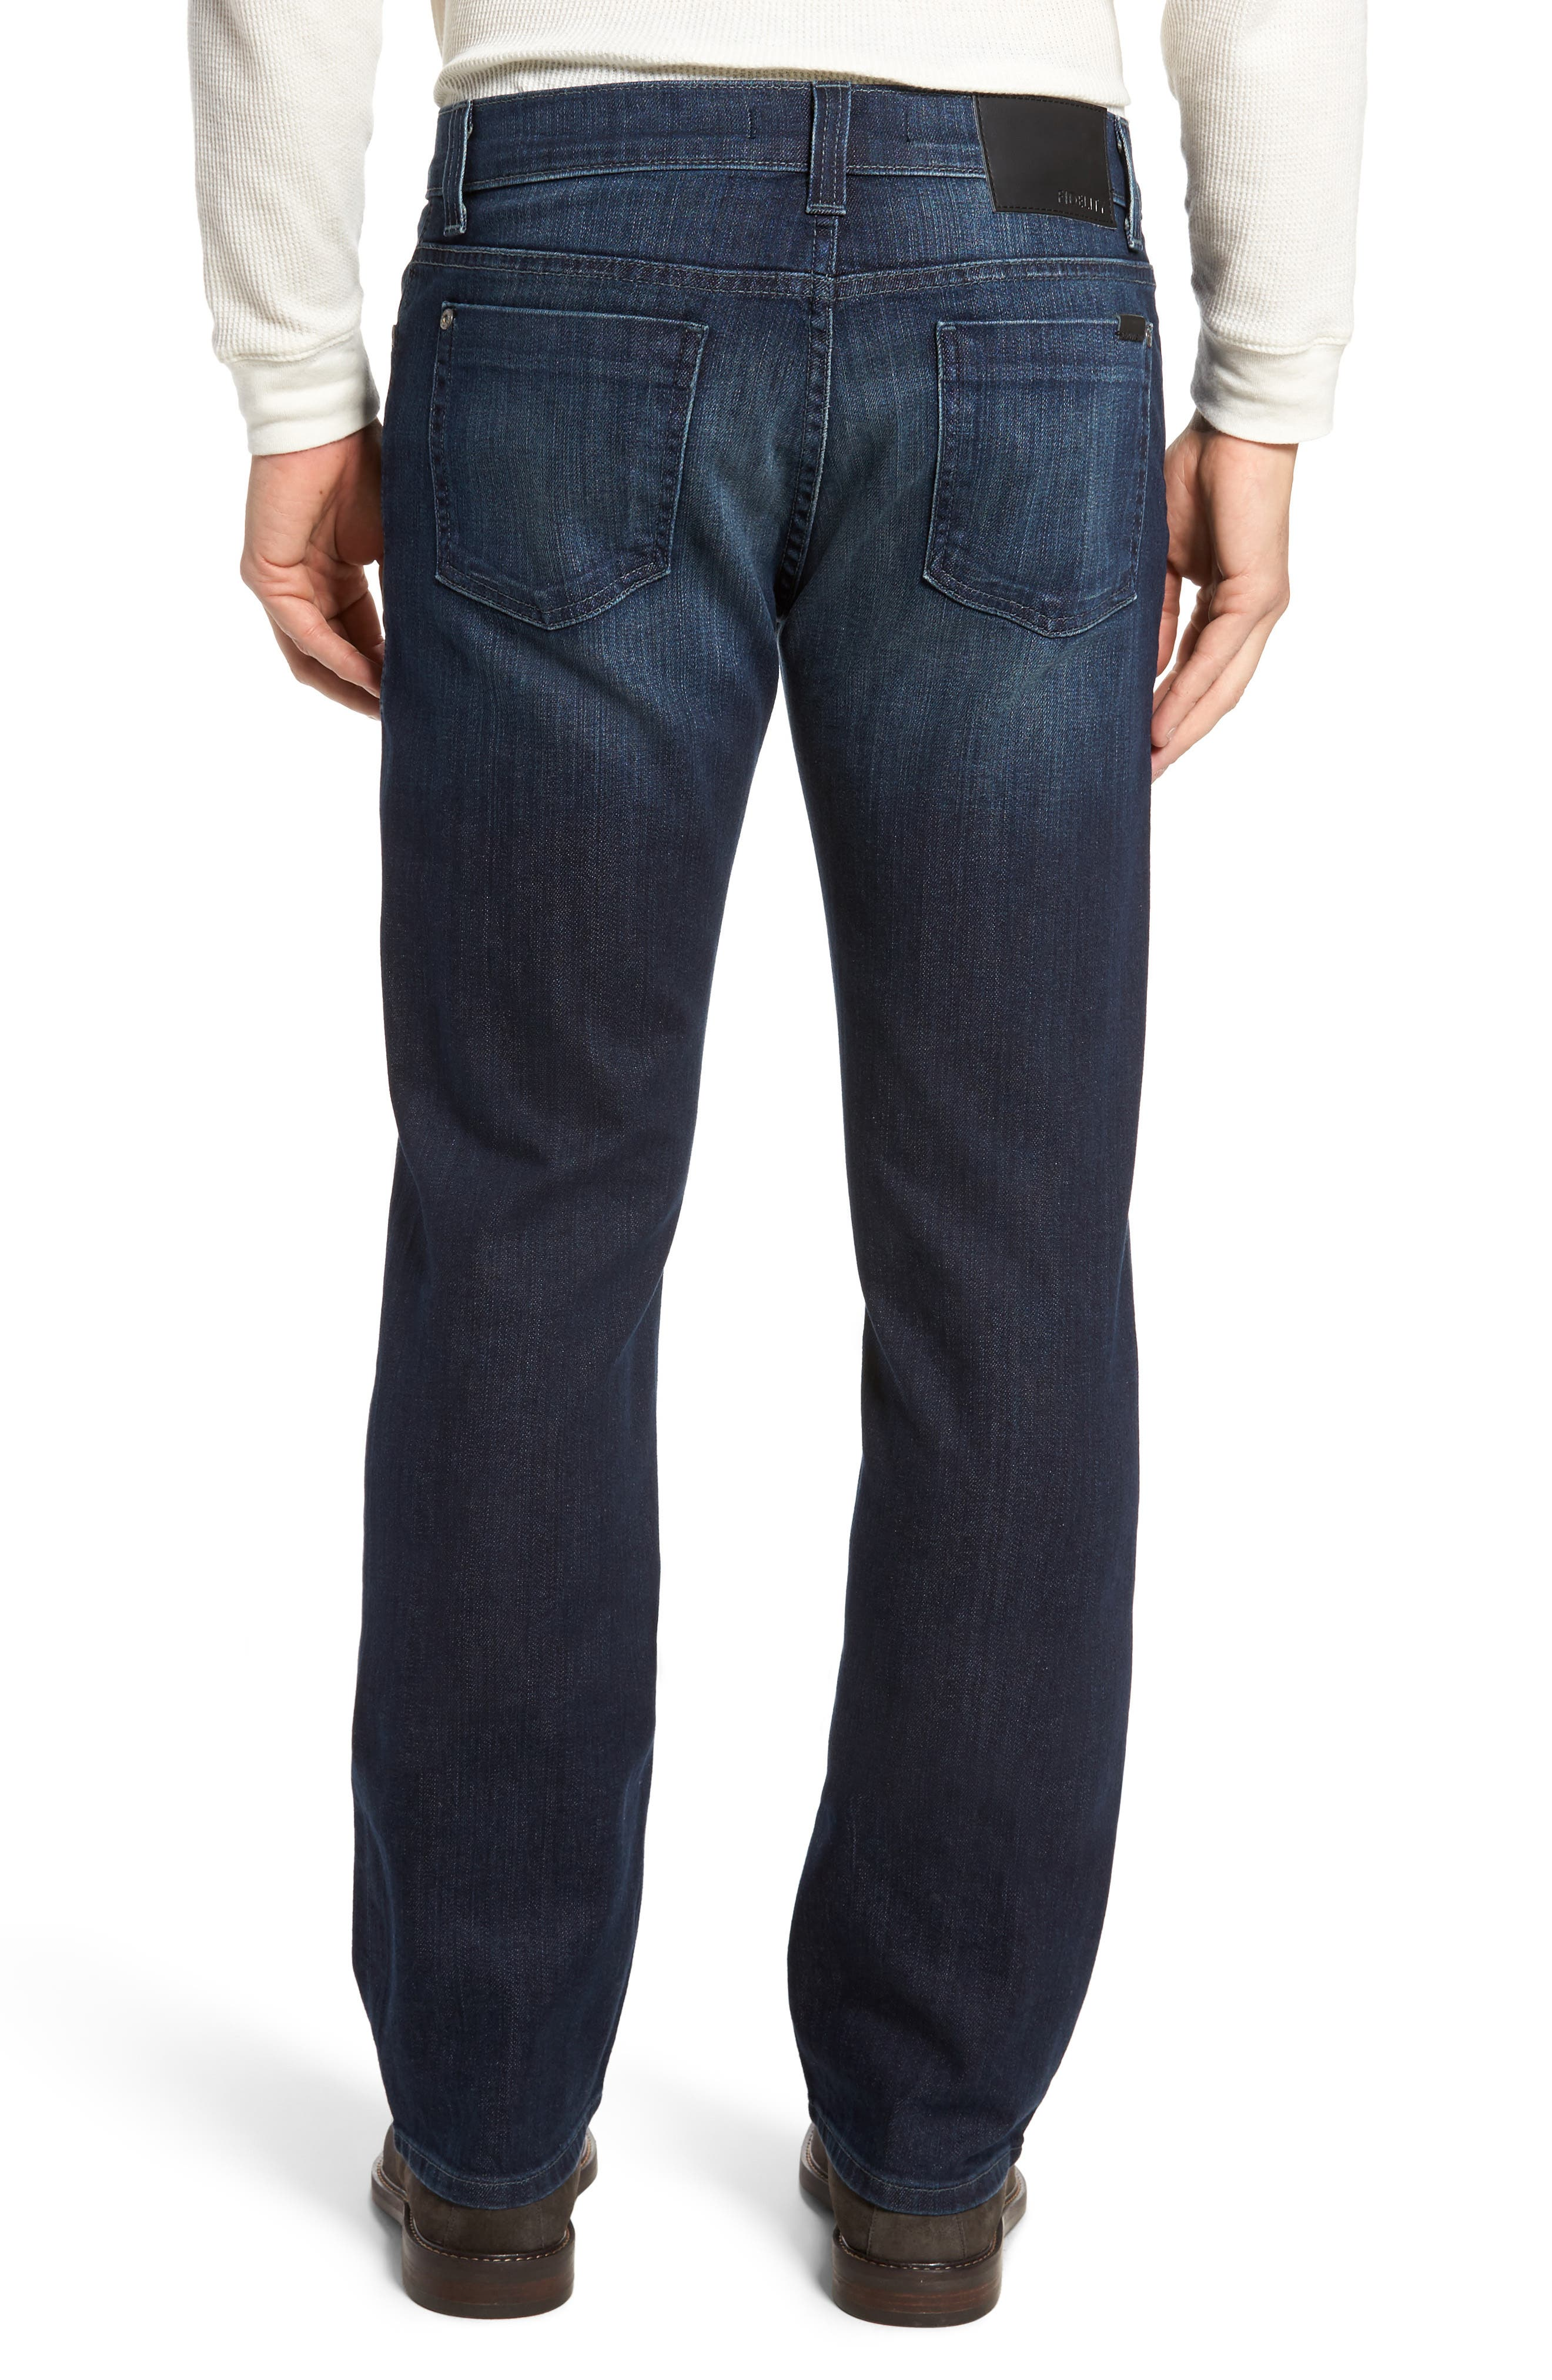 50-11 Relaxed Fit Jeans,                             Alternate thumbnail 2, color,                             400